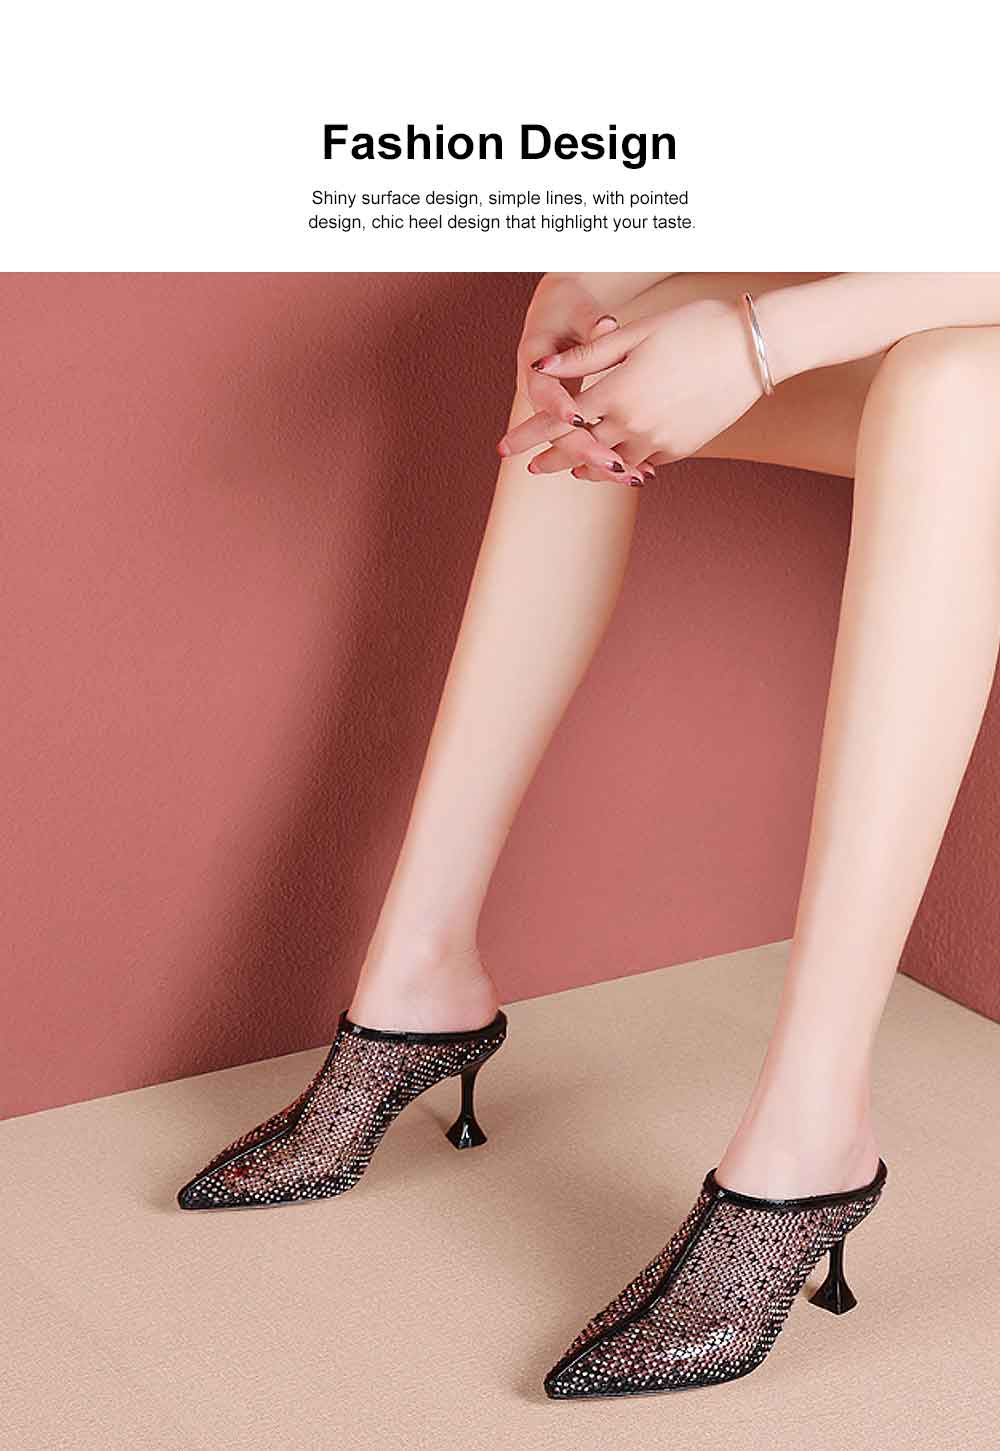 Women's Mid-heel Shoes, Comfortable Pointed Toe Casual Shoe, Fashion Mesh Slim Heel Stiletto Heels Shoes 1